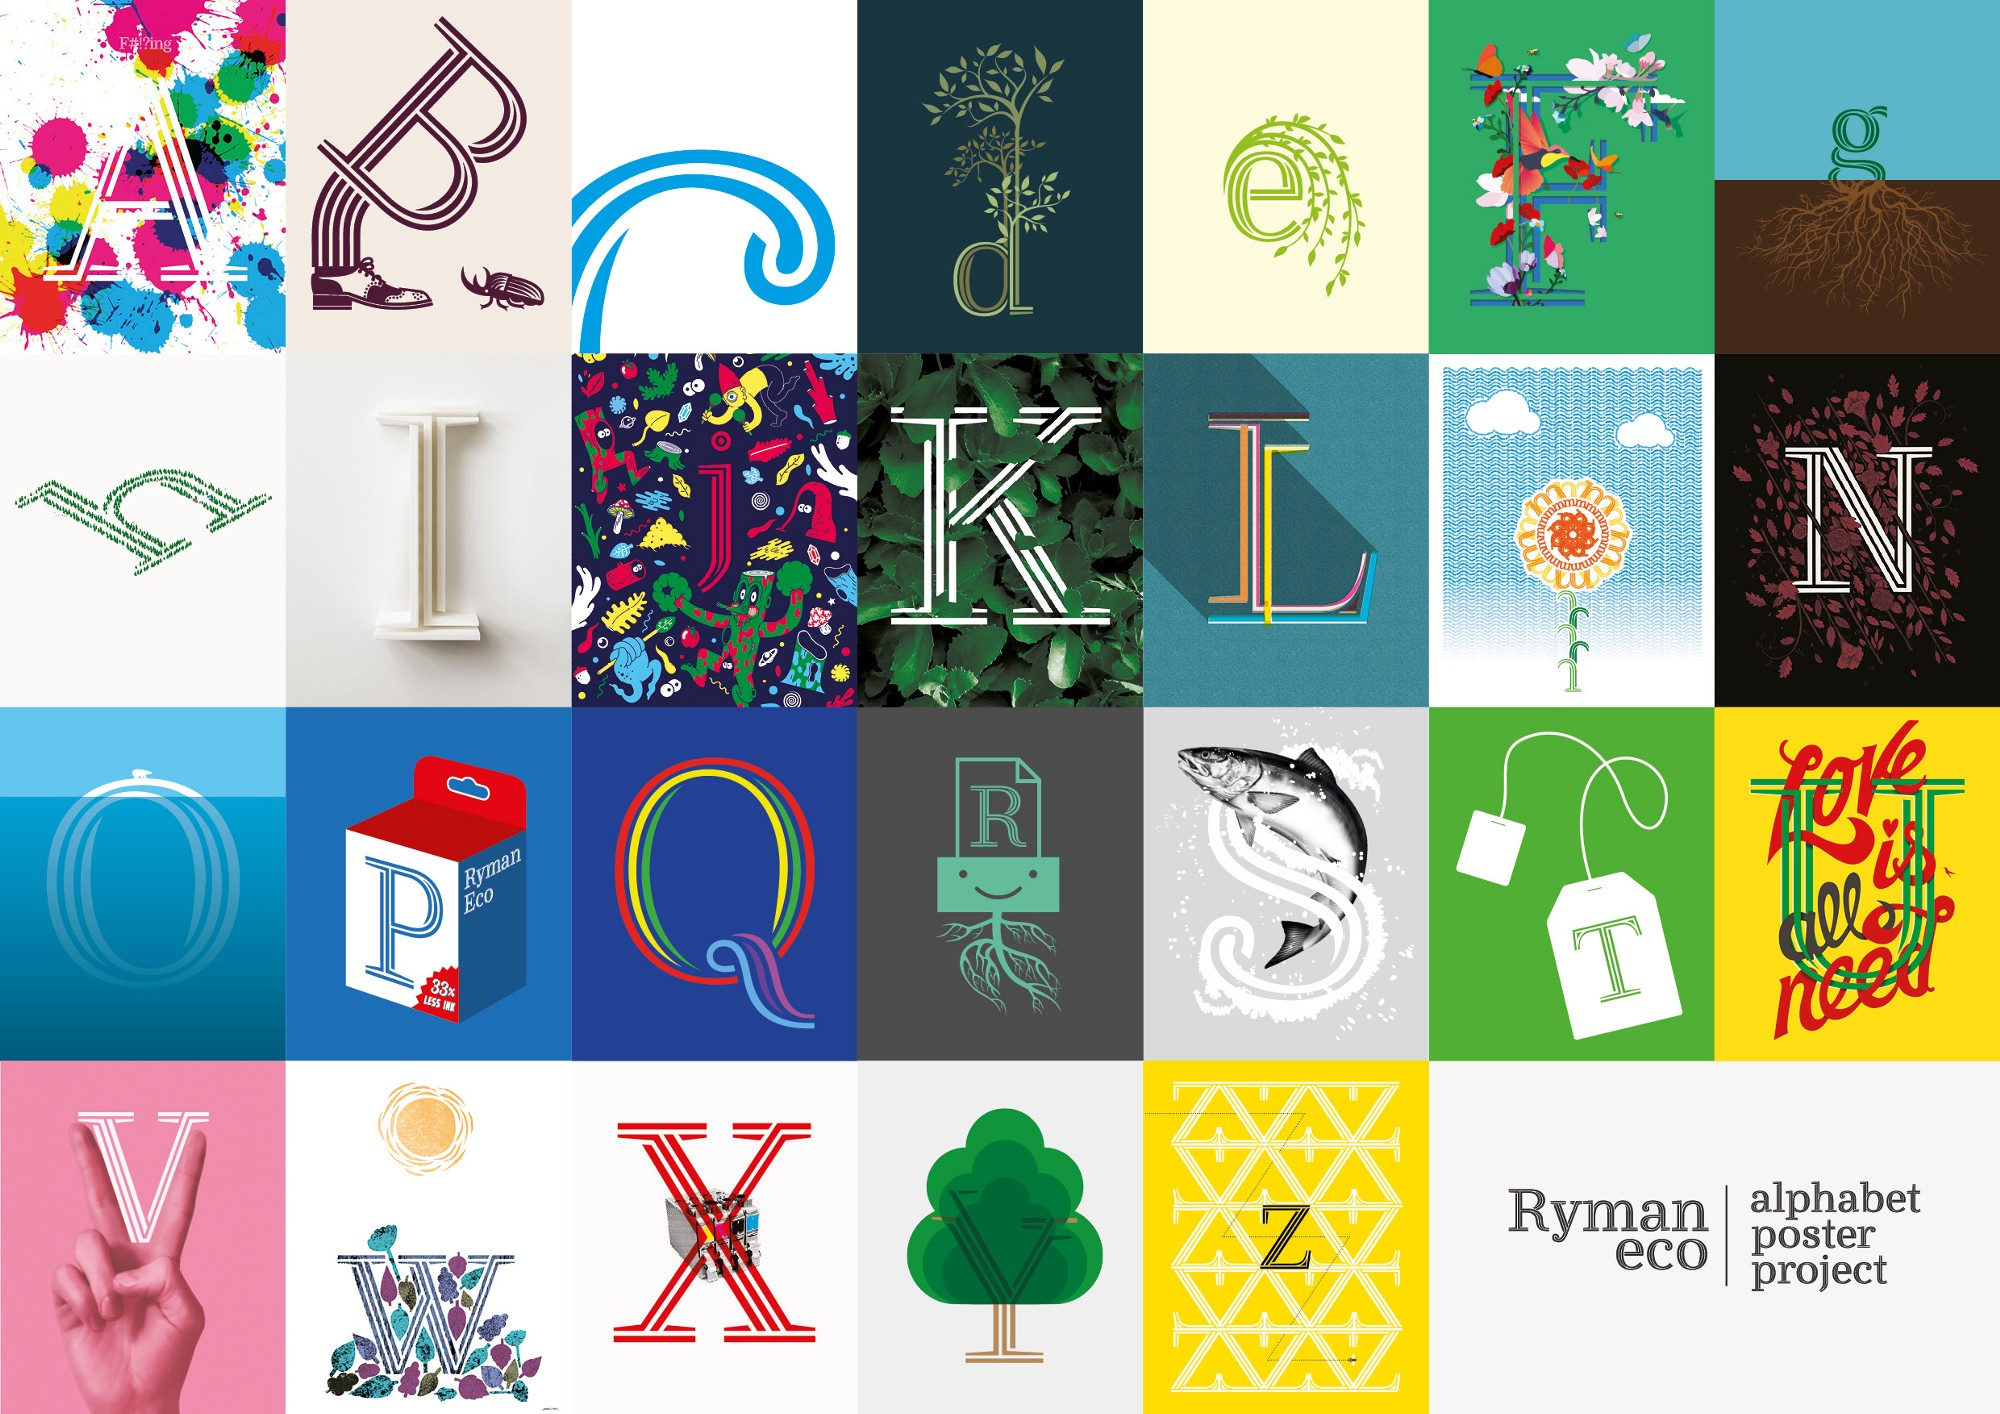 Alphabet Poster Project The Ryman Eco Initiative Aims To Encourage Design Community Adopt Worlds Most Beautiful Sustainable Font